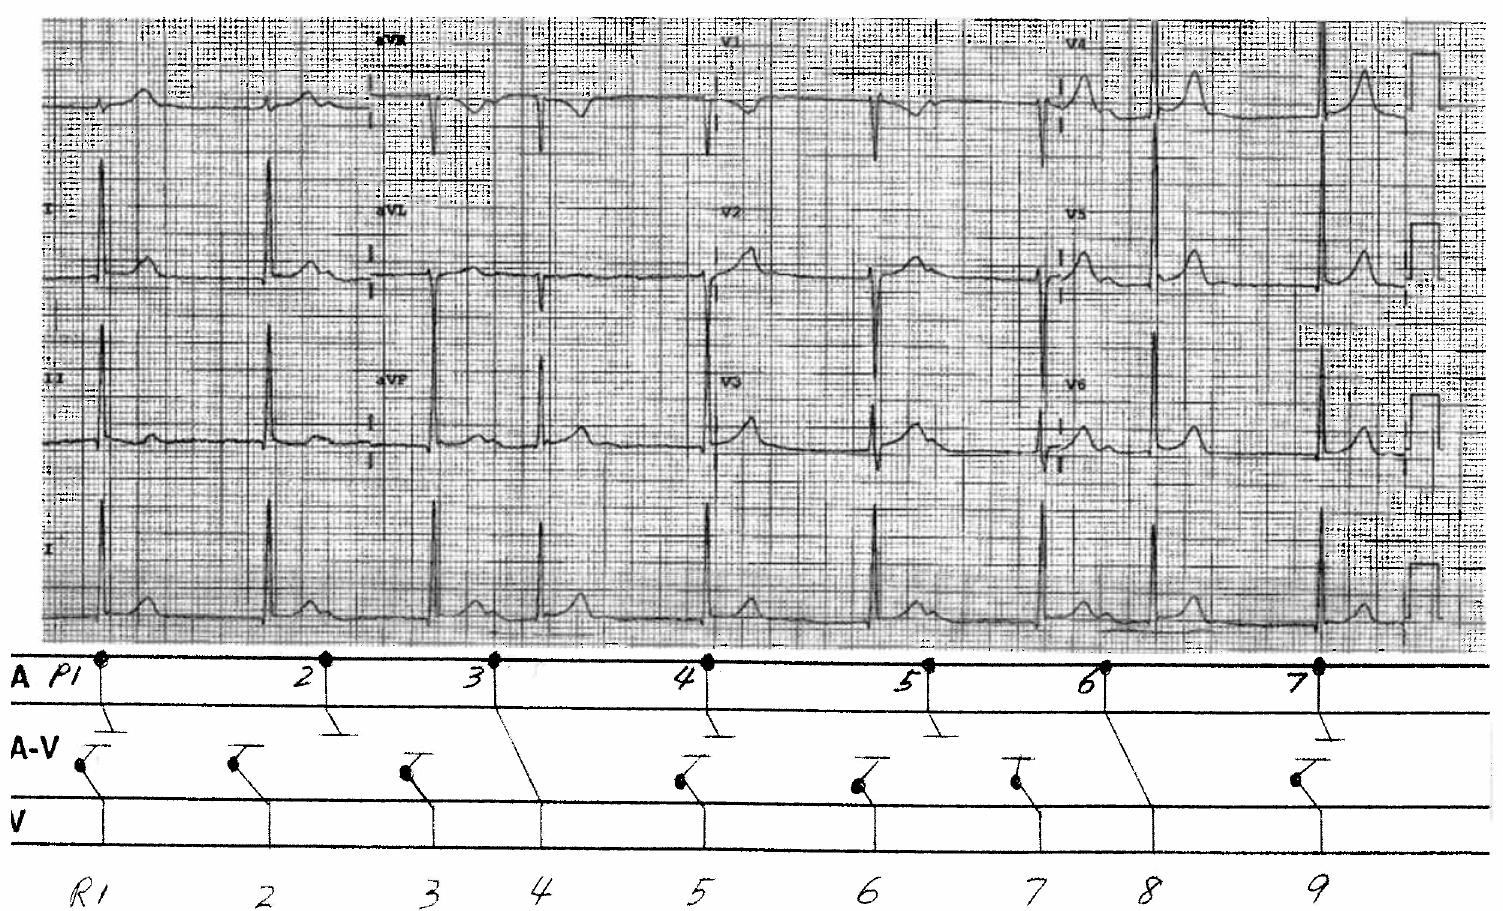 dr smith s ecg blog a mystery rhythm explained by k wang s rh hqmeded ecg blogspot com